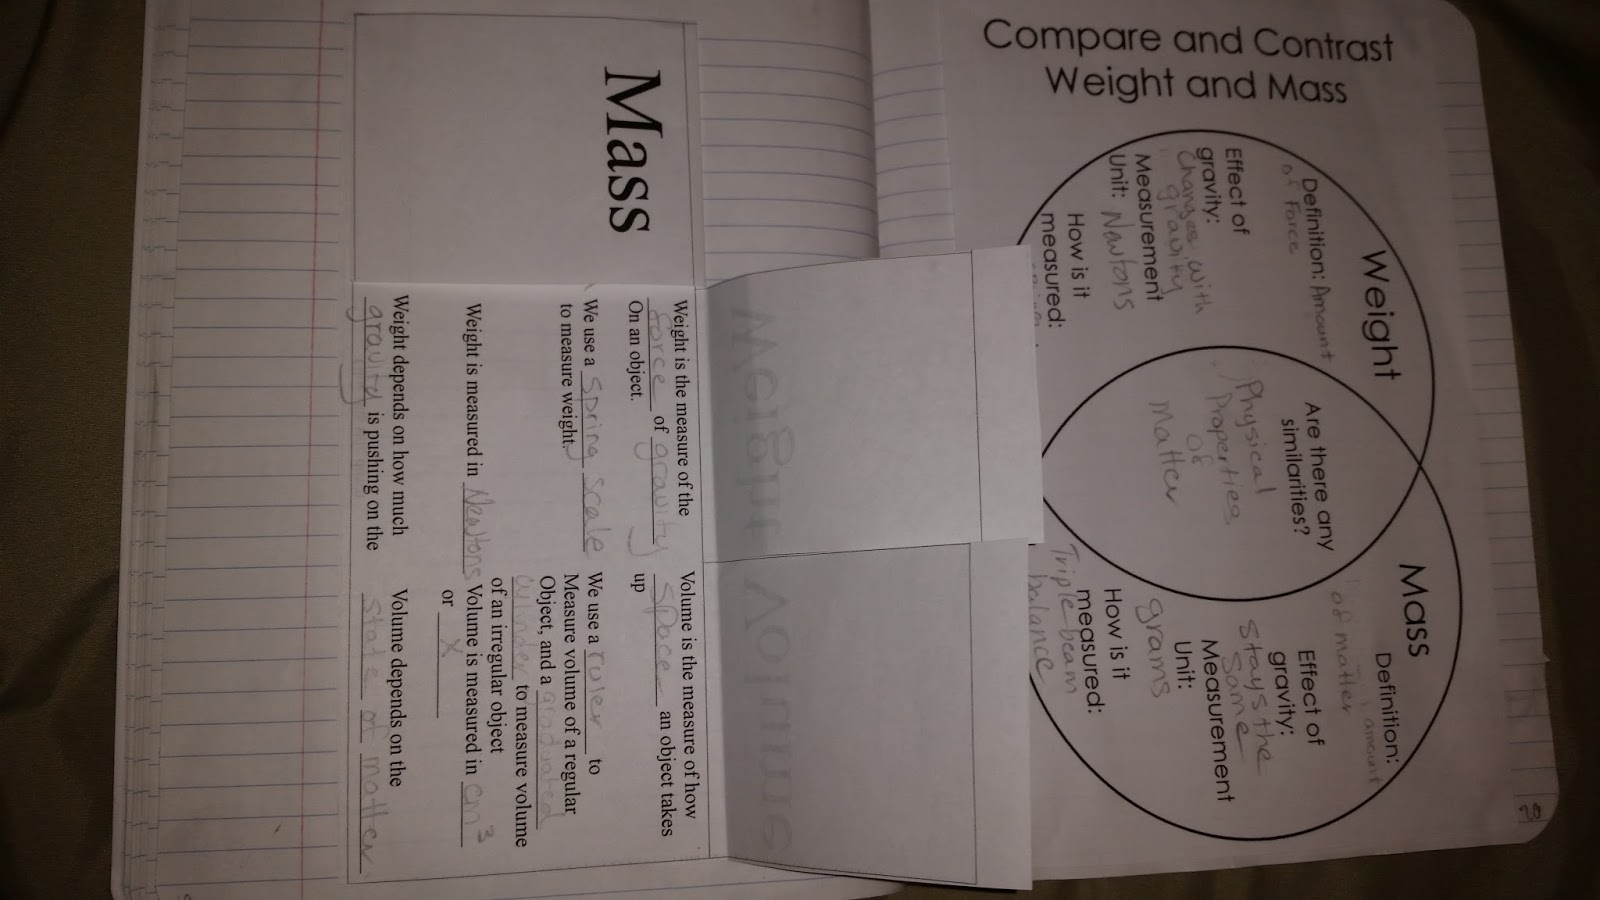 compare and contrast mass weight venn diagram consumer unit wiring split load foldable grand under development co ms kats science class week 4 september 14 18